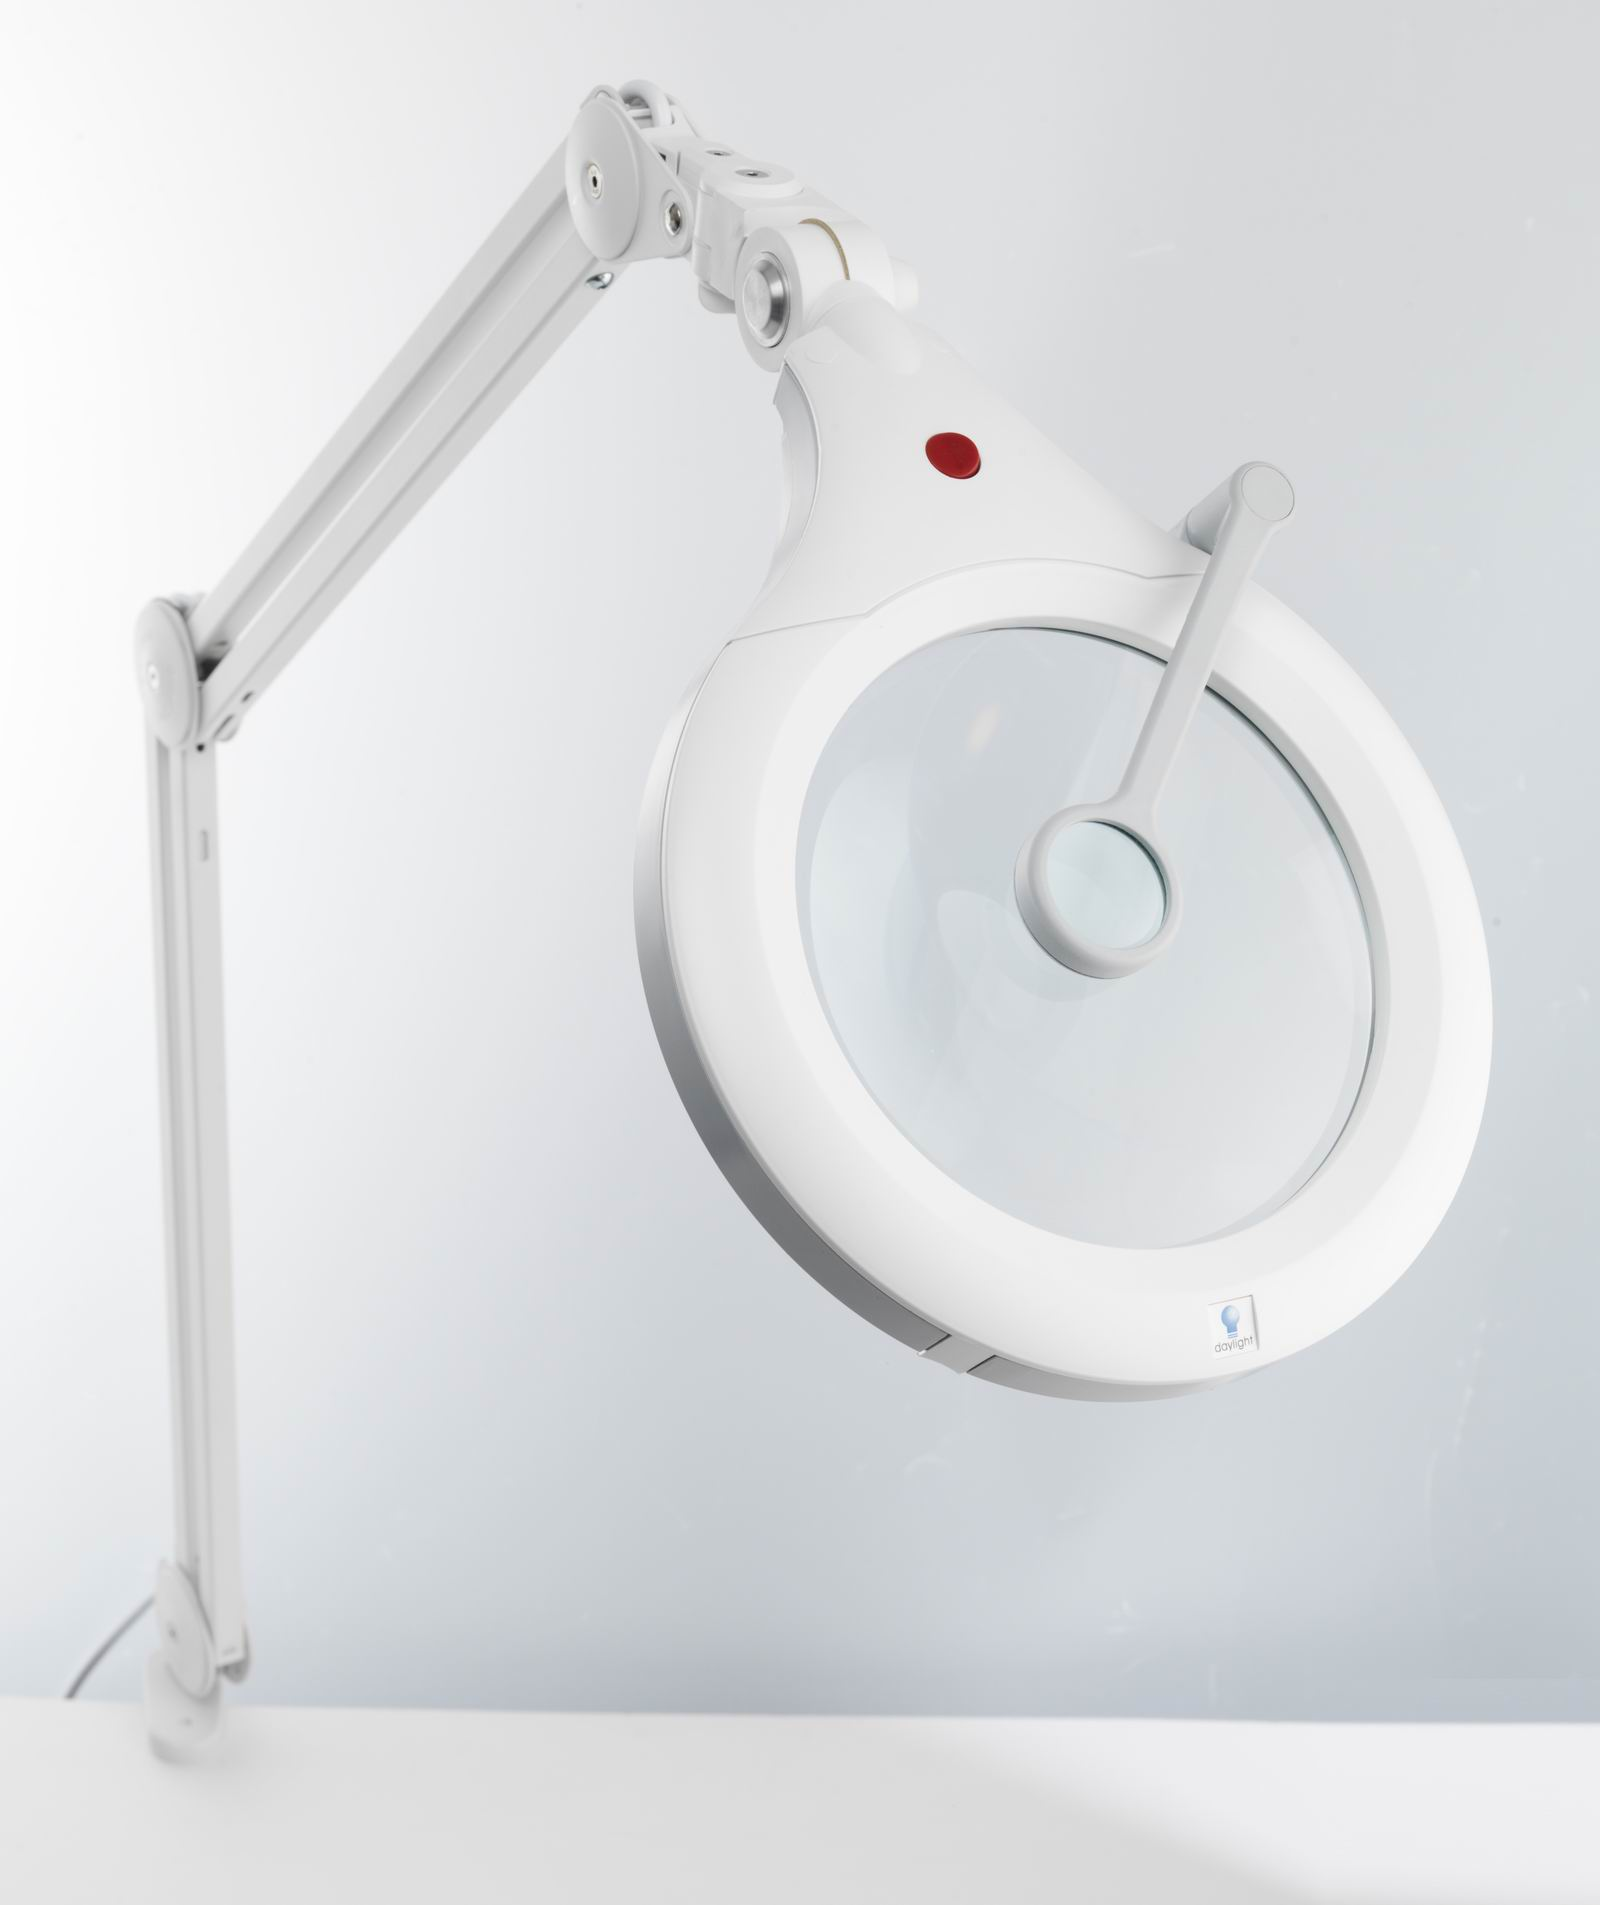 Daylight UltraSlim LED Magnifying Lamp XR